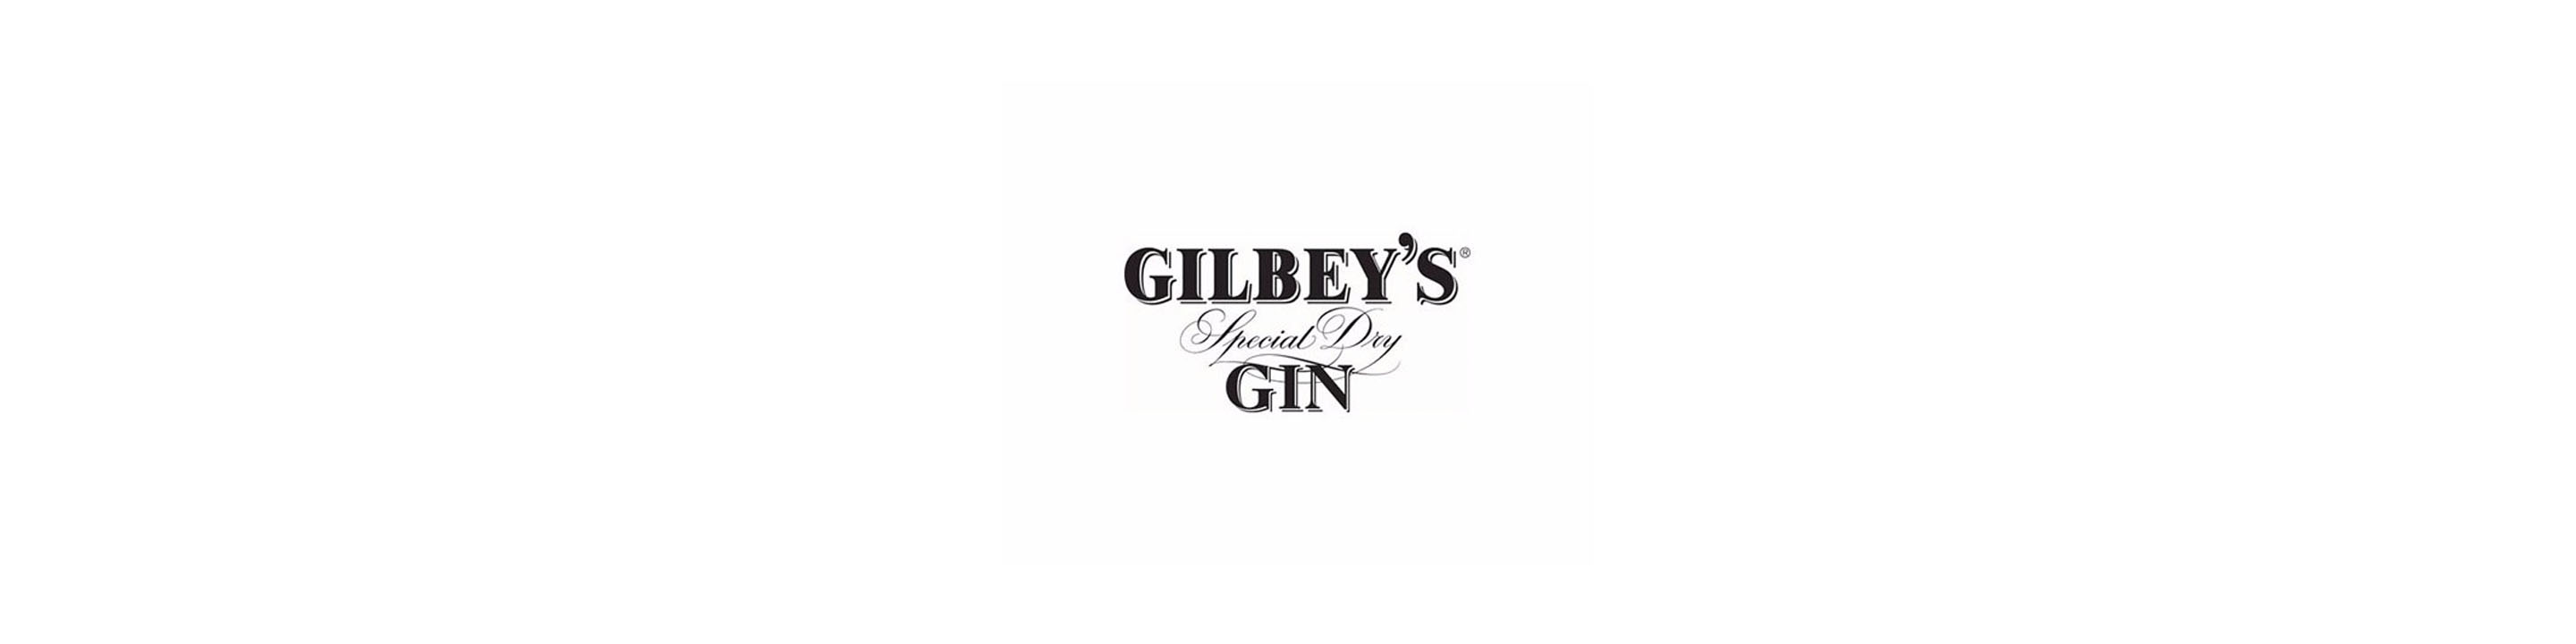 First appearing on the market in 1956, the Gilbey's® name maintains a reputation for producing only the highest quality spirits. Gilbey's® continues to deliver premium taste due to being made from the finest grains. 